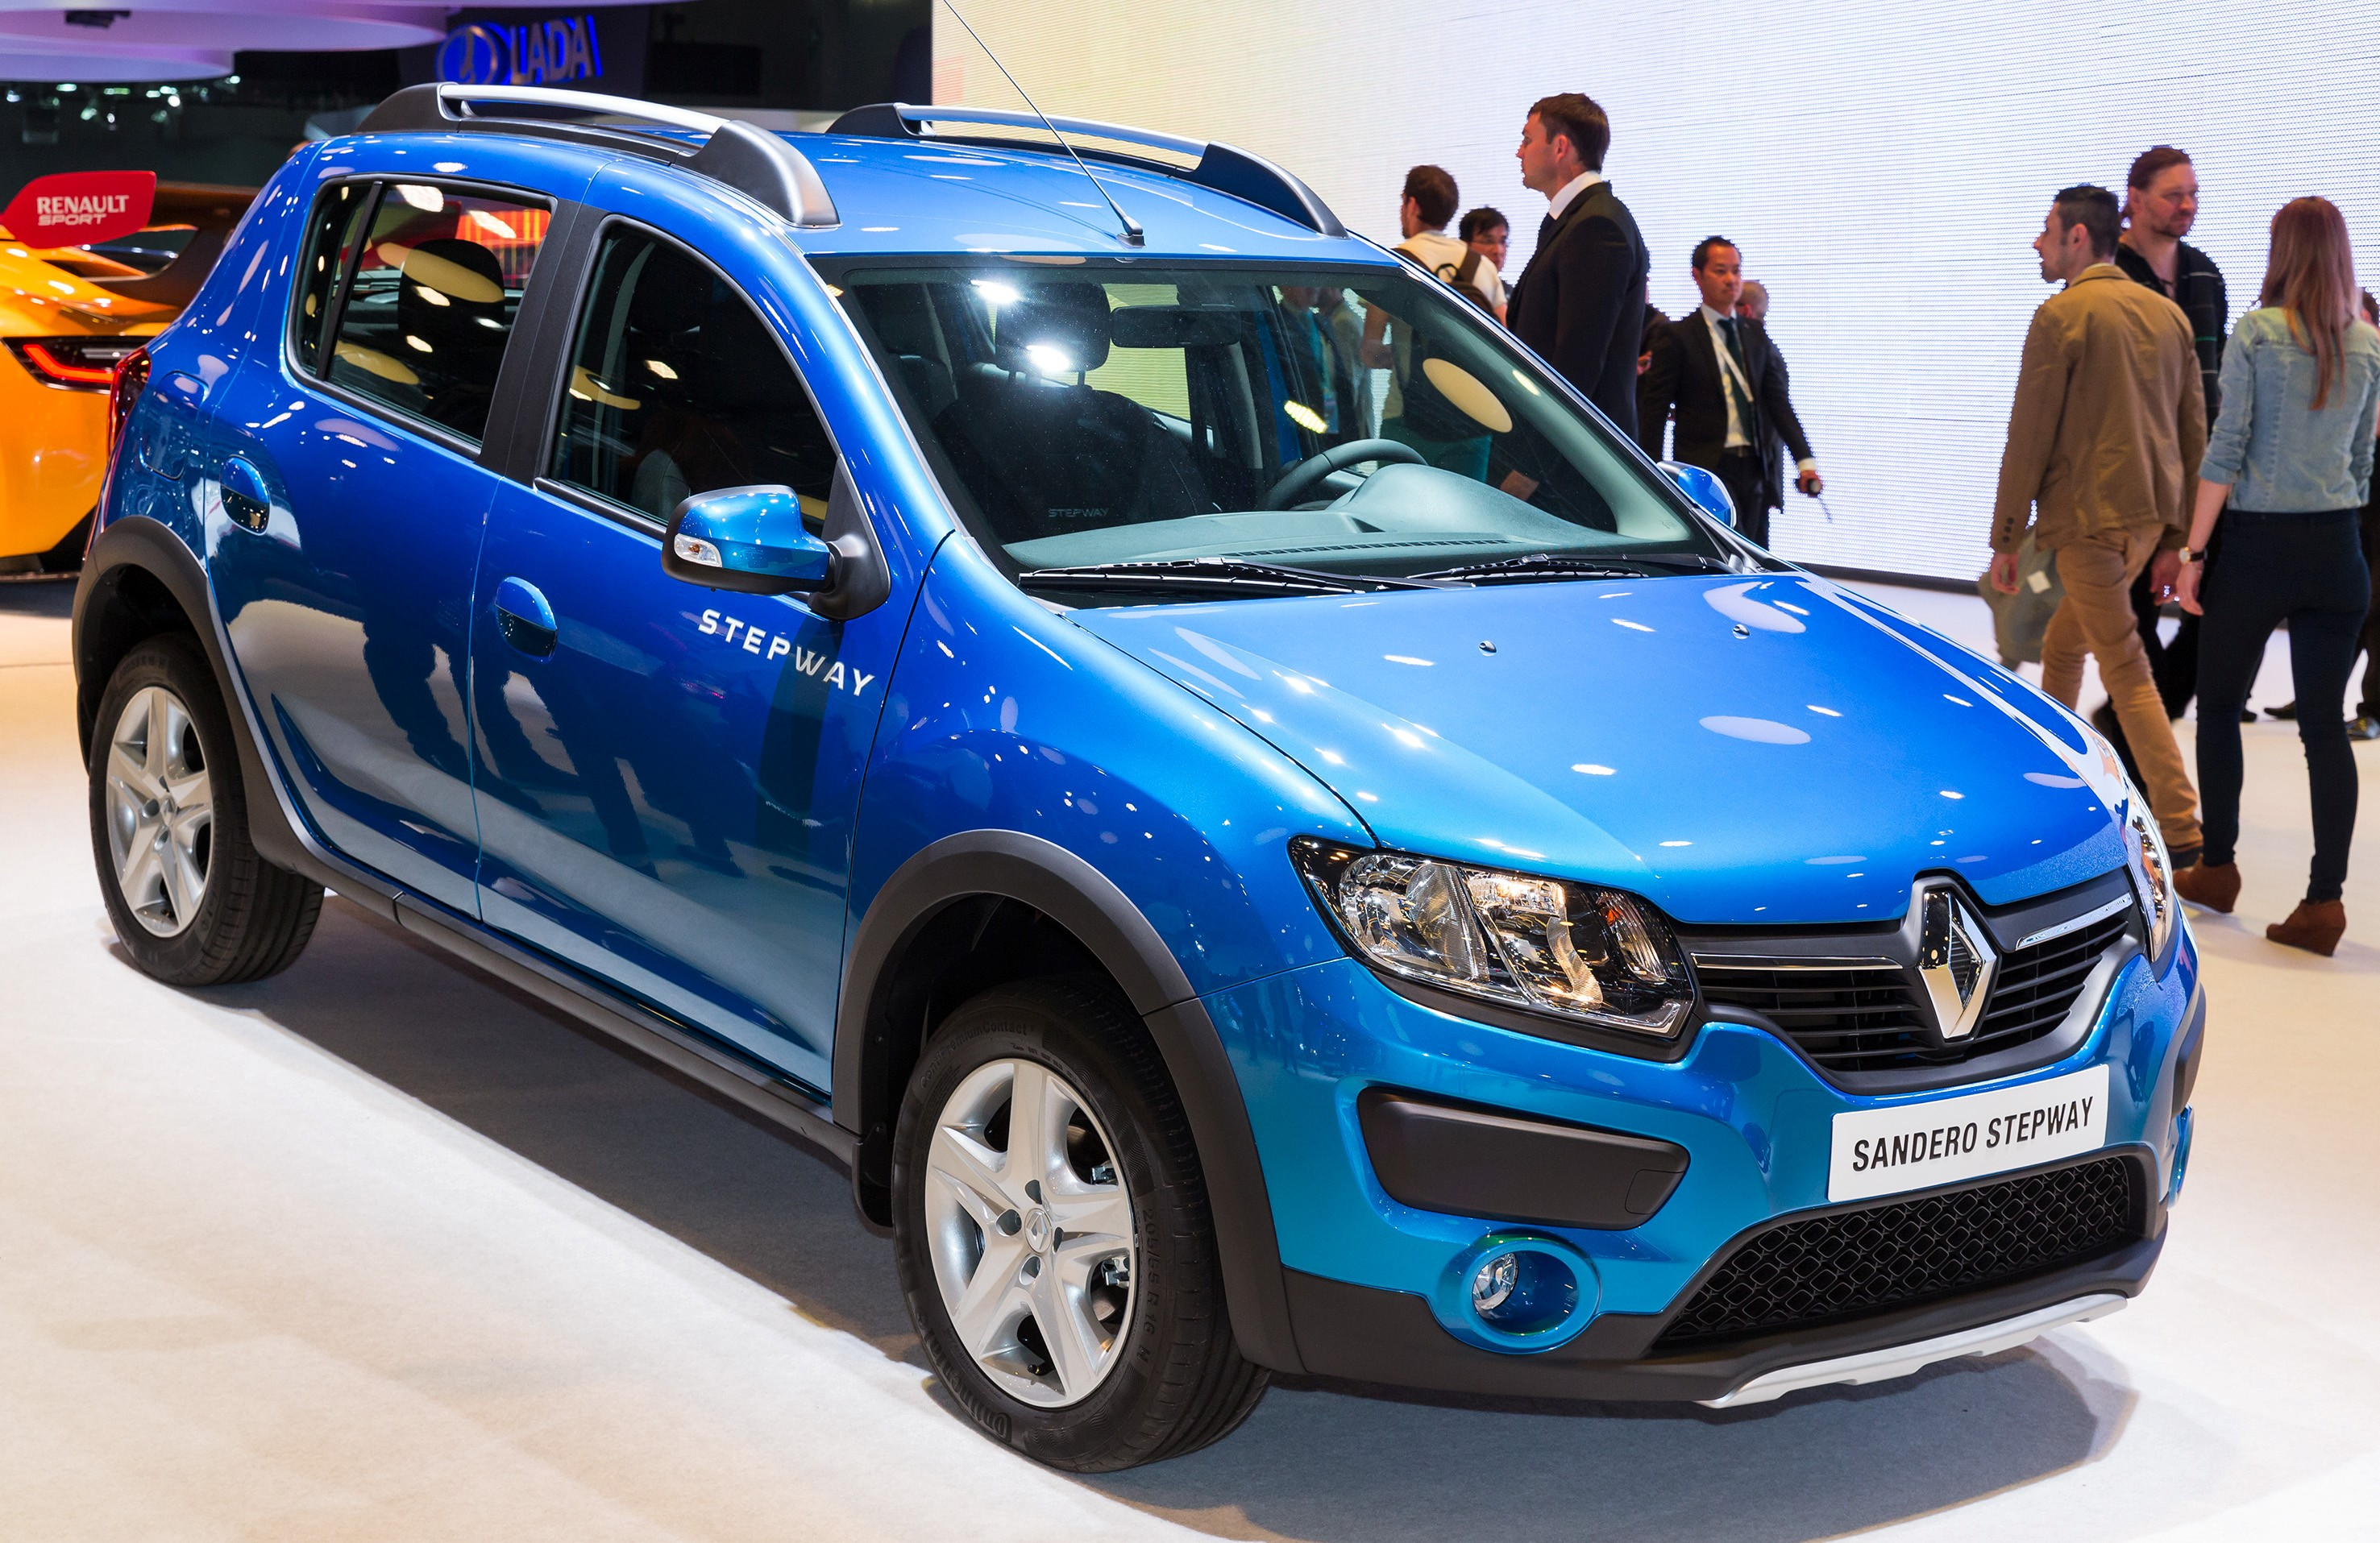 russian spec 2014 renault sandero stepway looks funky. Black Bedroom Furniture Sets. Home Design Ideas